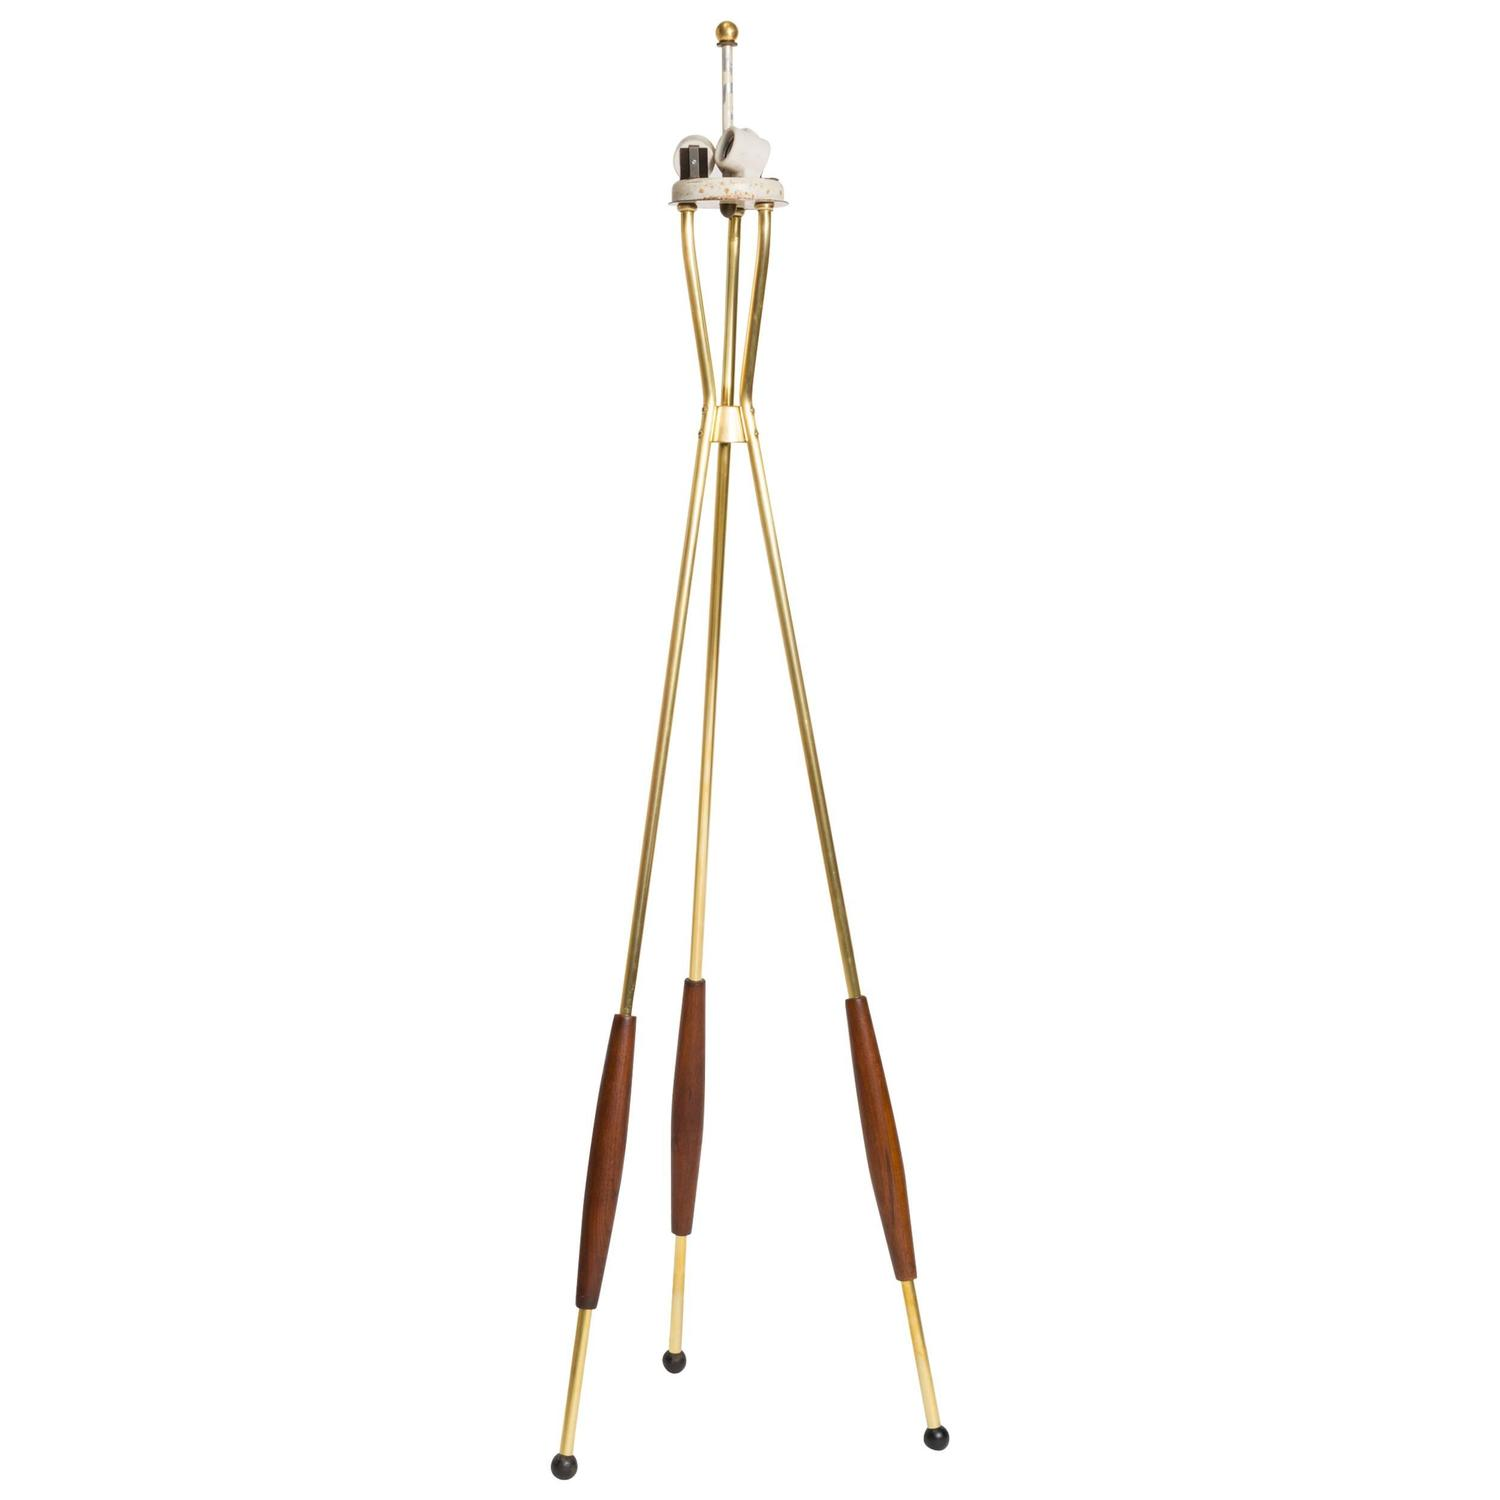 Brass And Walnut Tripod Floor Lamp By Gerald Thurston For